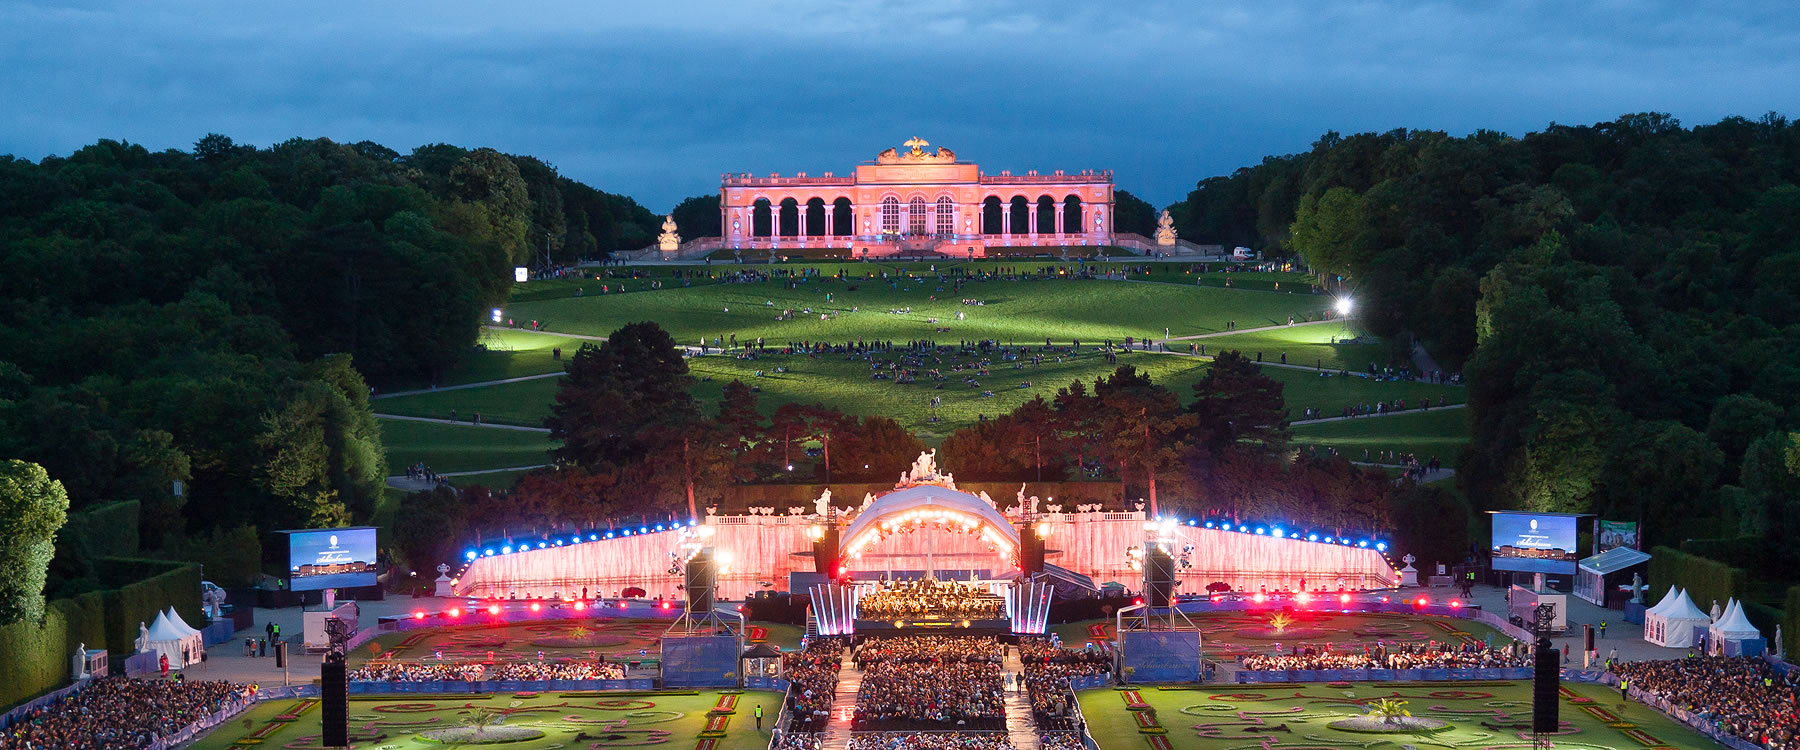 outdoor evening concert with orchestra in mid-ground and large palace in background